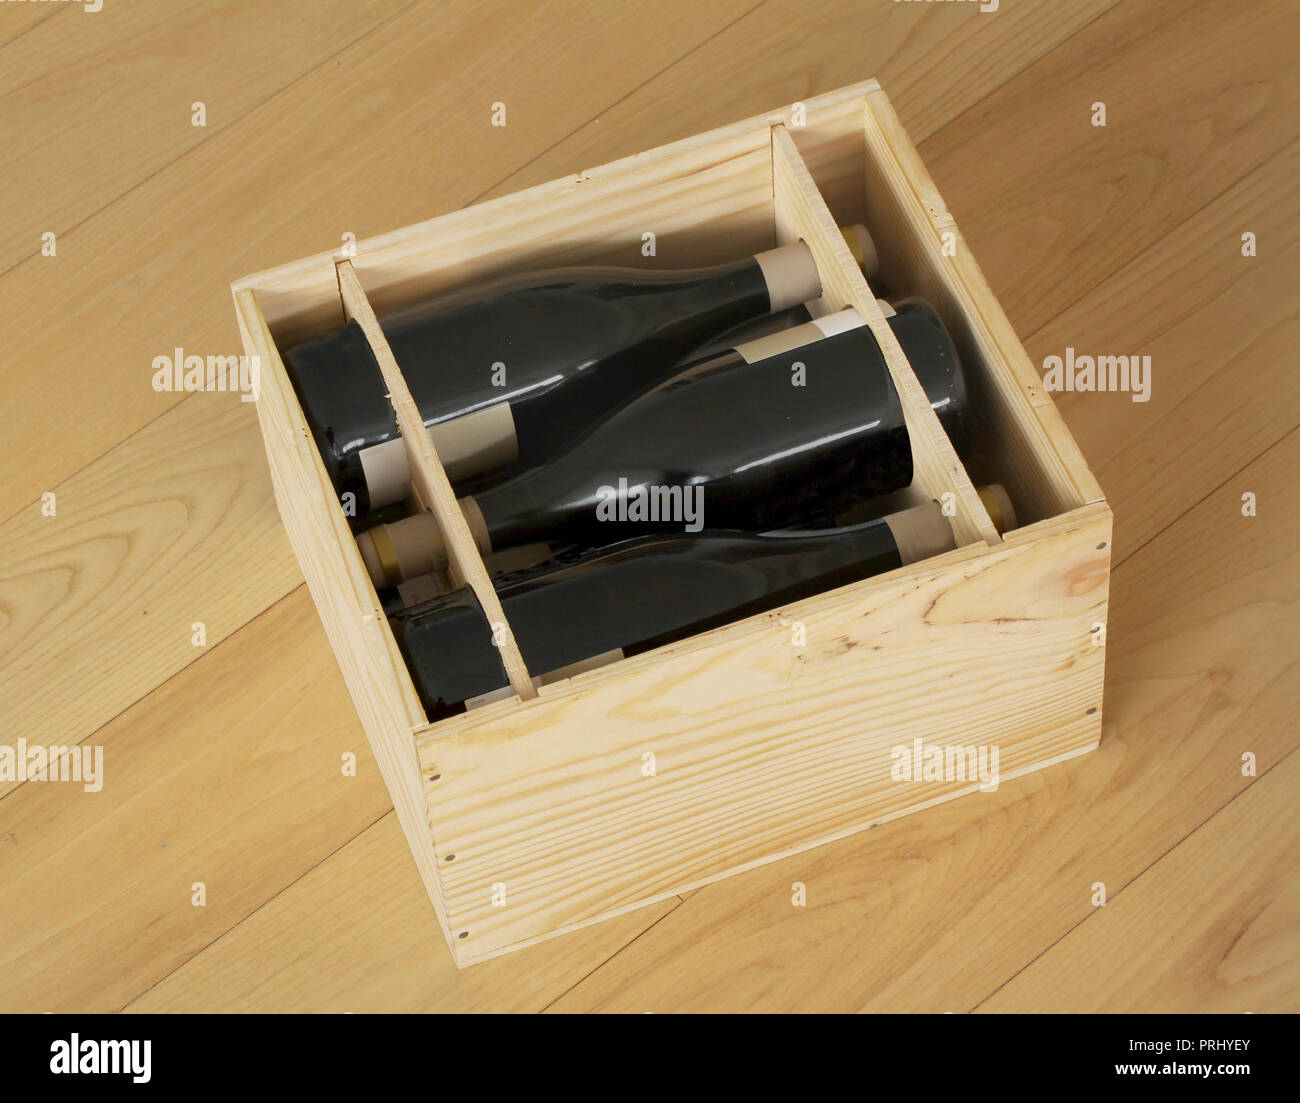 Red Wine Bottles Packed In Open Wooden Box Standing On Wood Floor